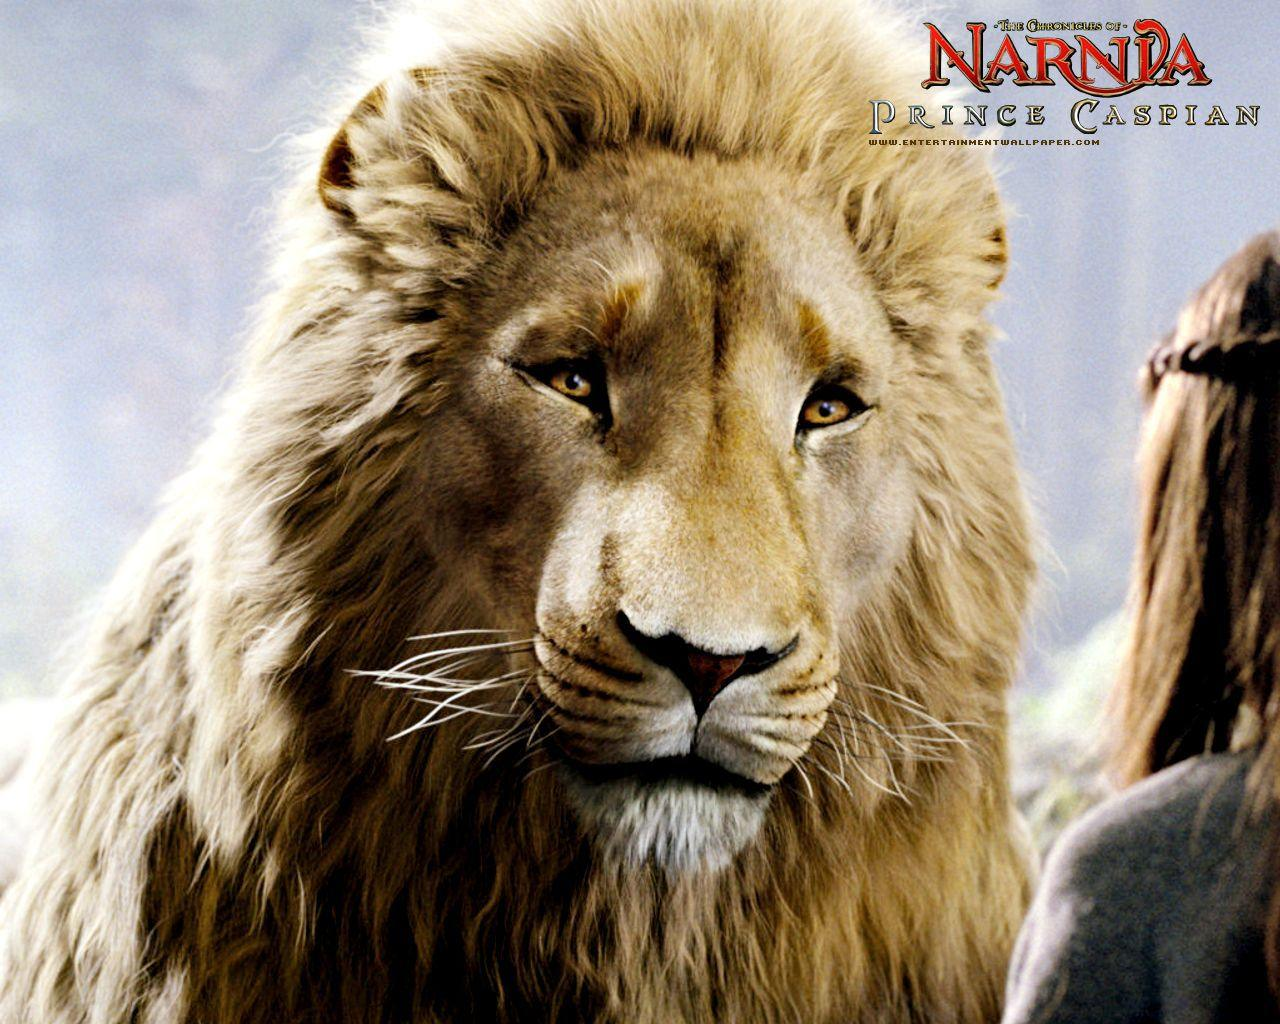 Photo Chronicles Of Narnia The Chronicles Of Narnia Prince Caspian